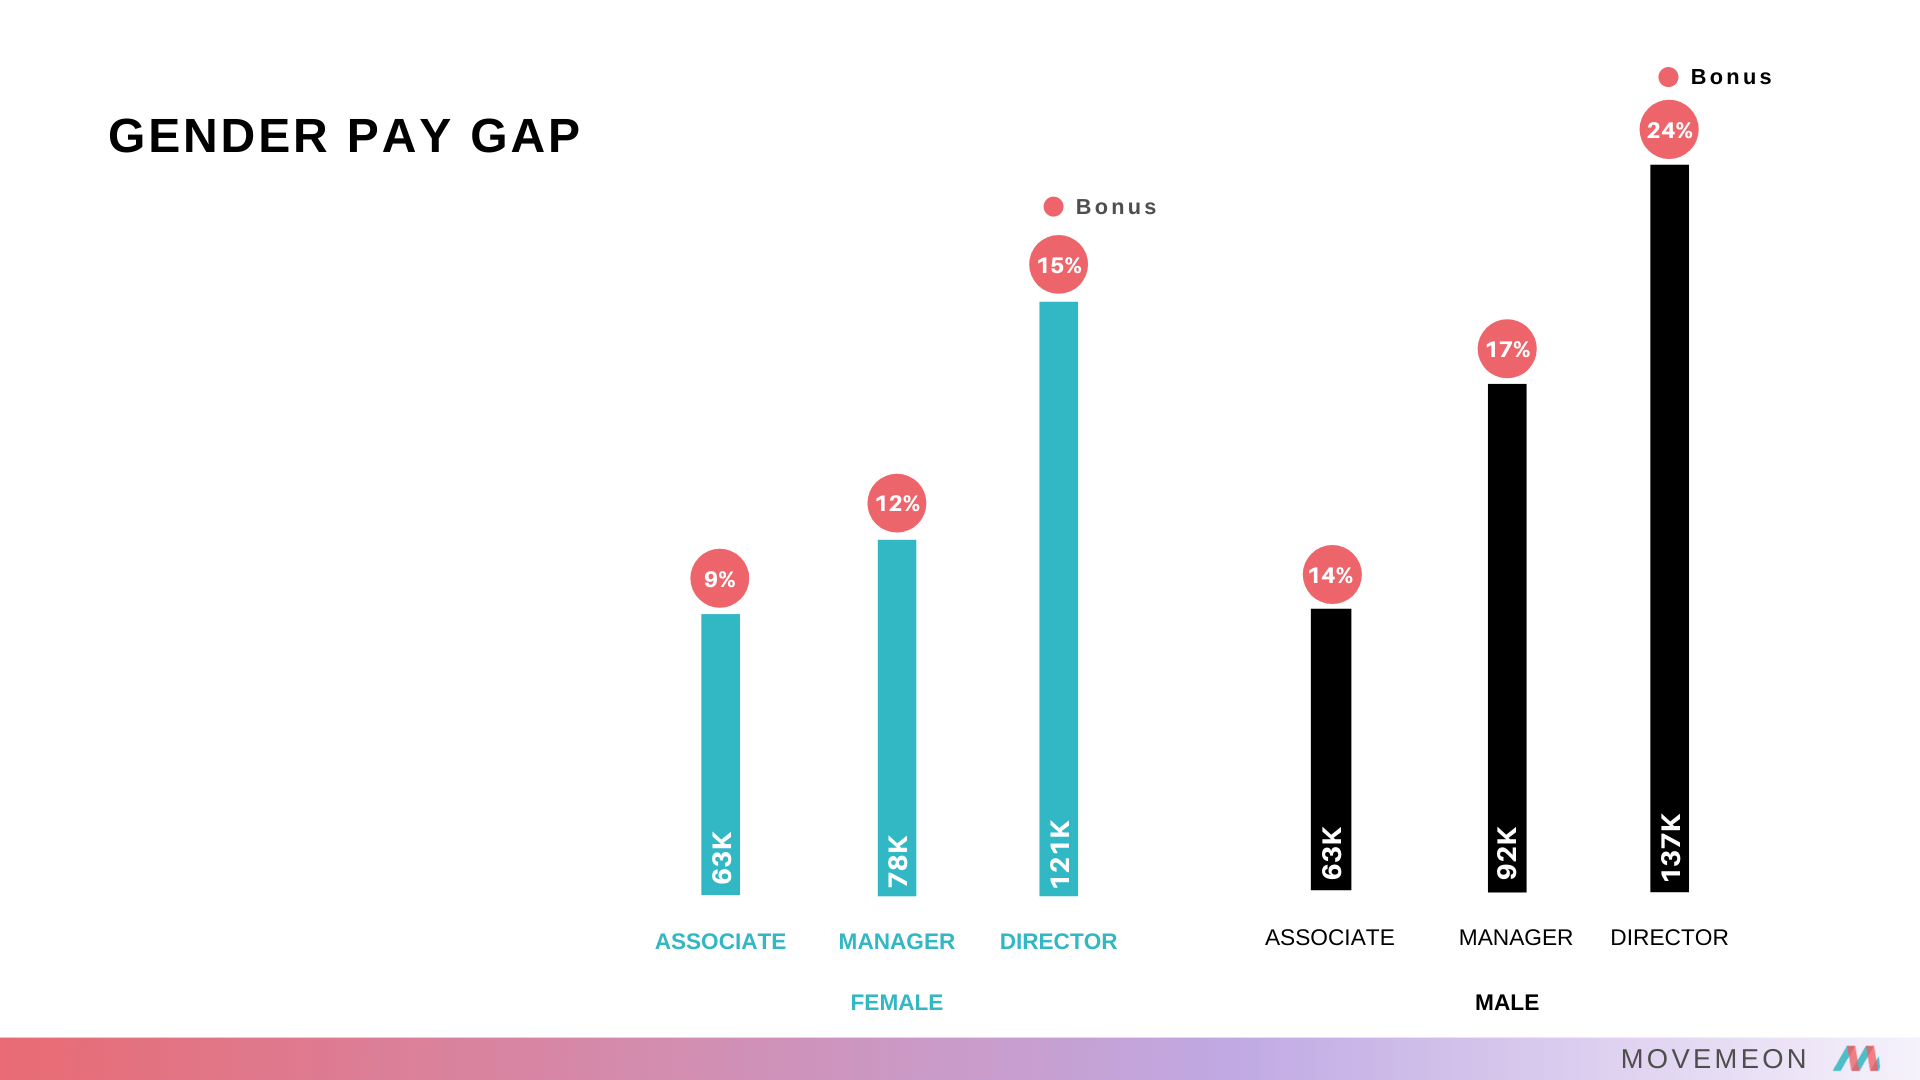 gender pay gap consulting movemeon